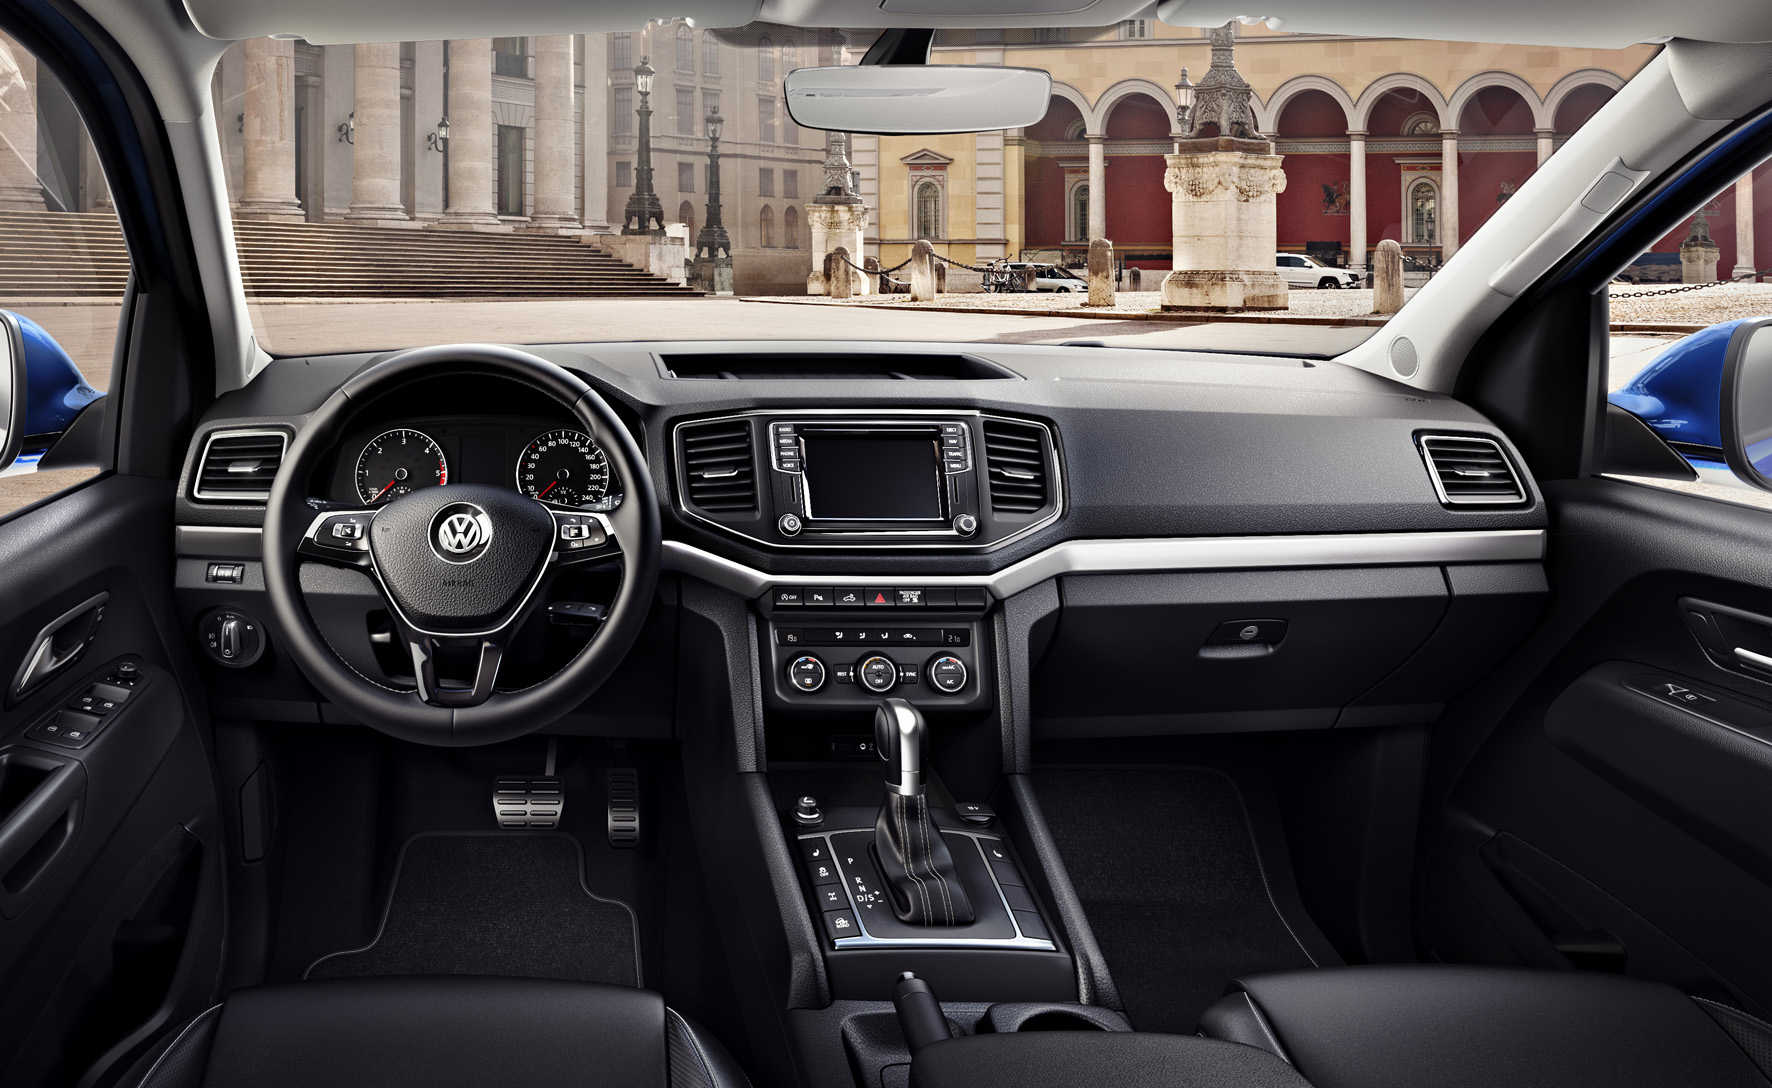 The facelifted Amarok's interior stands up well against the rivals